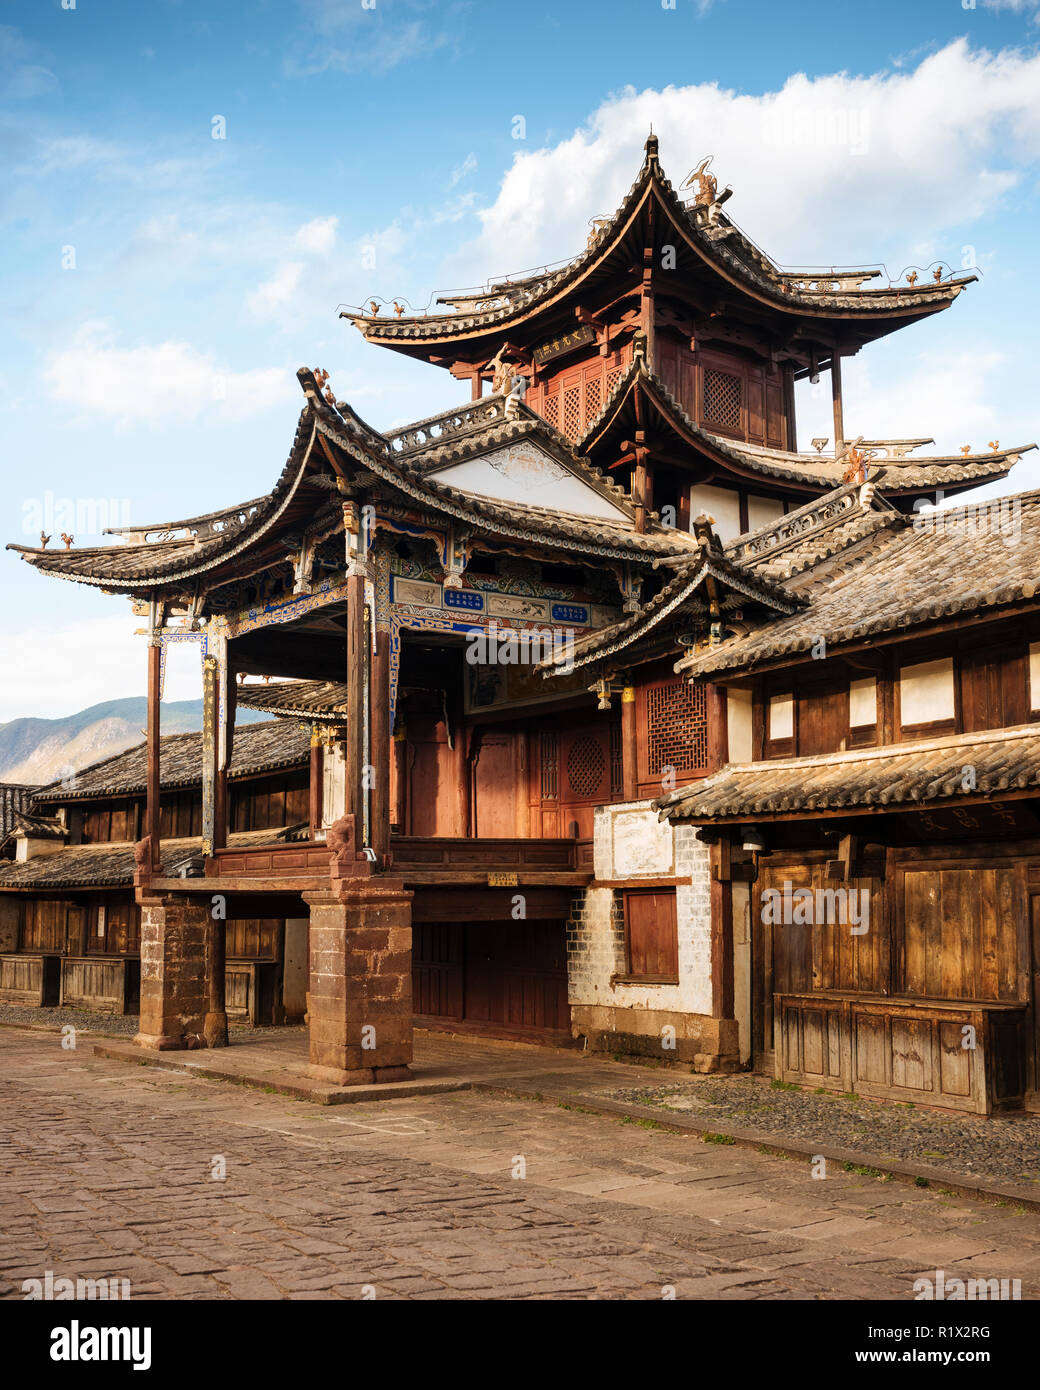 The Three Terraced Pavilion, Shaxi, Yunnan Province, China Stock Photo